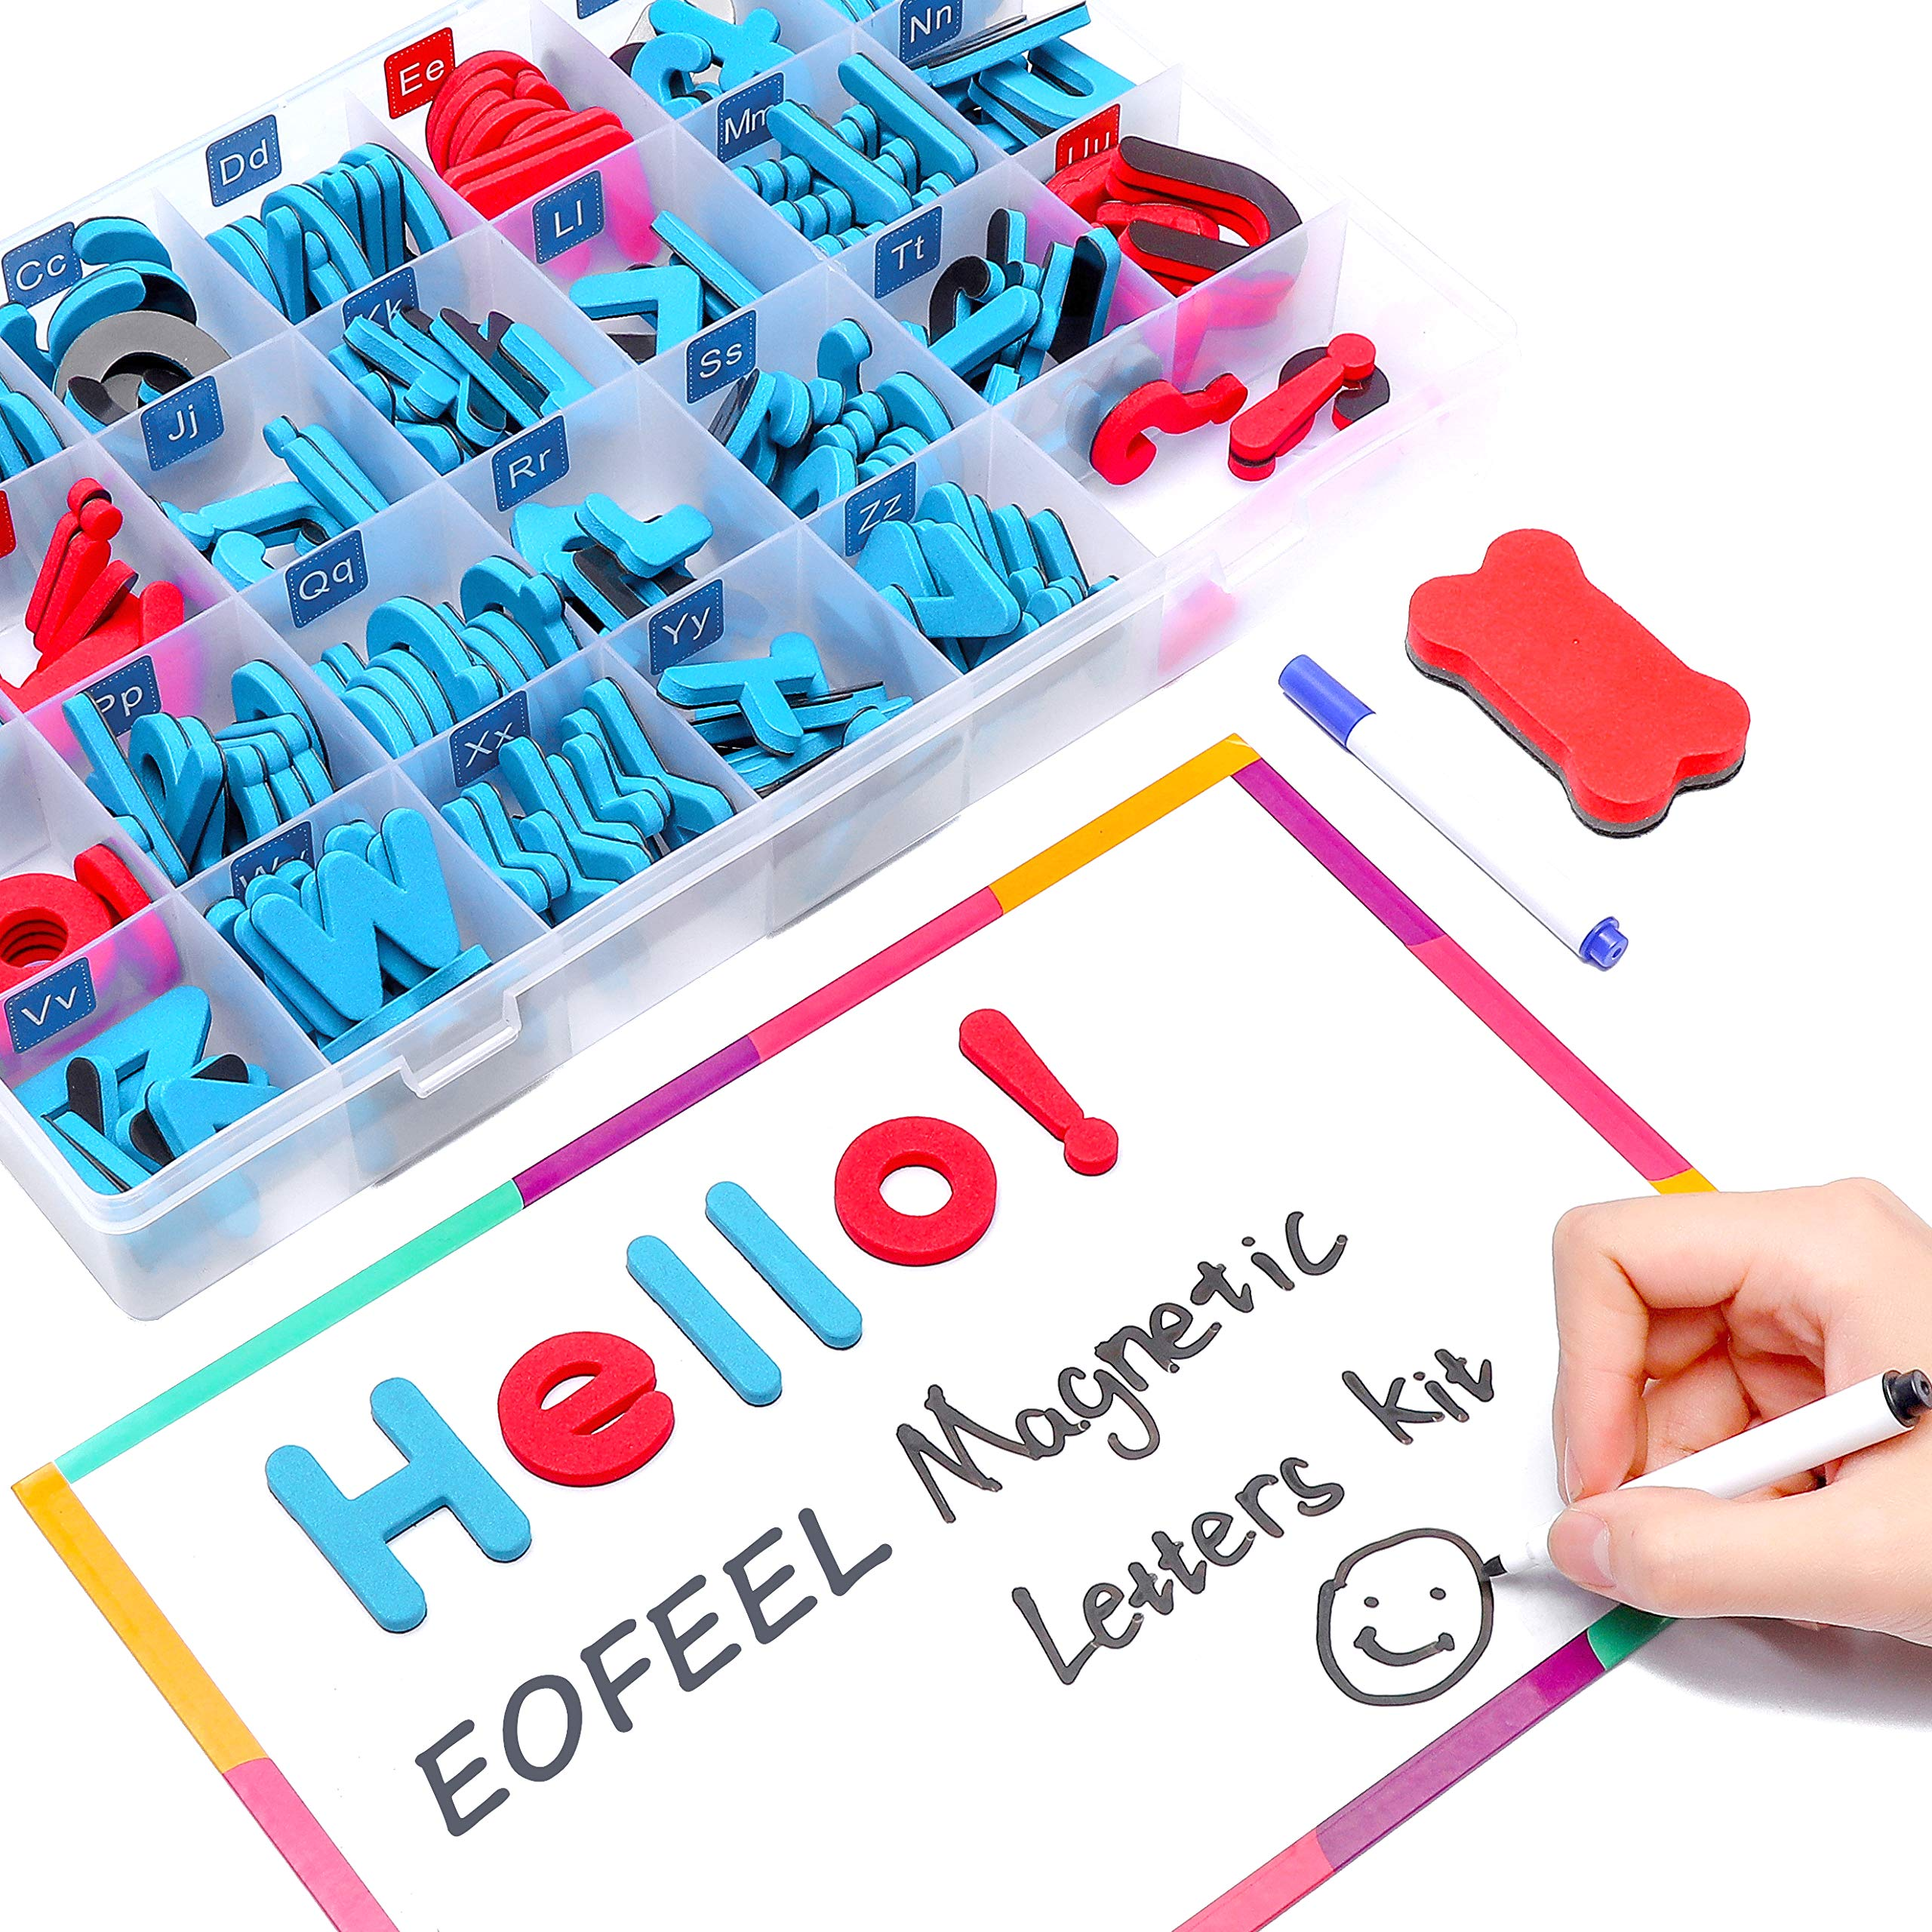 EOFEEL Magnetic Letters kit Double -Side Dry Erase Magnetic Board - Educational Vocabulary Alphabet Refrigerator Magnets for Kids Gift Set(208pcs,Red & Blue) by EOFEEL